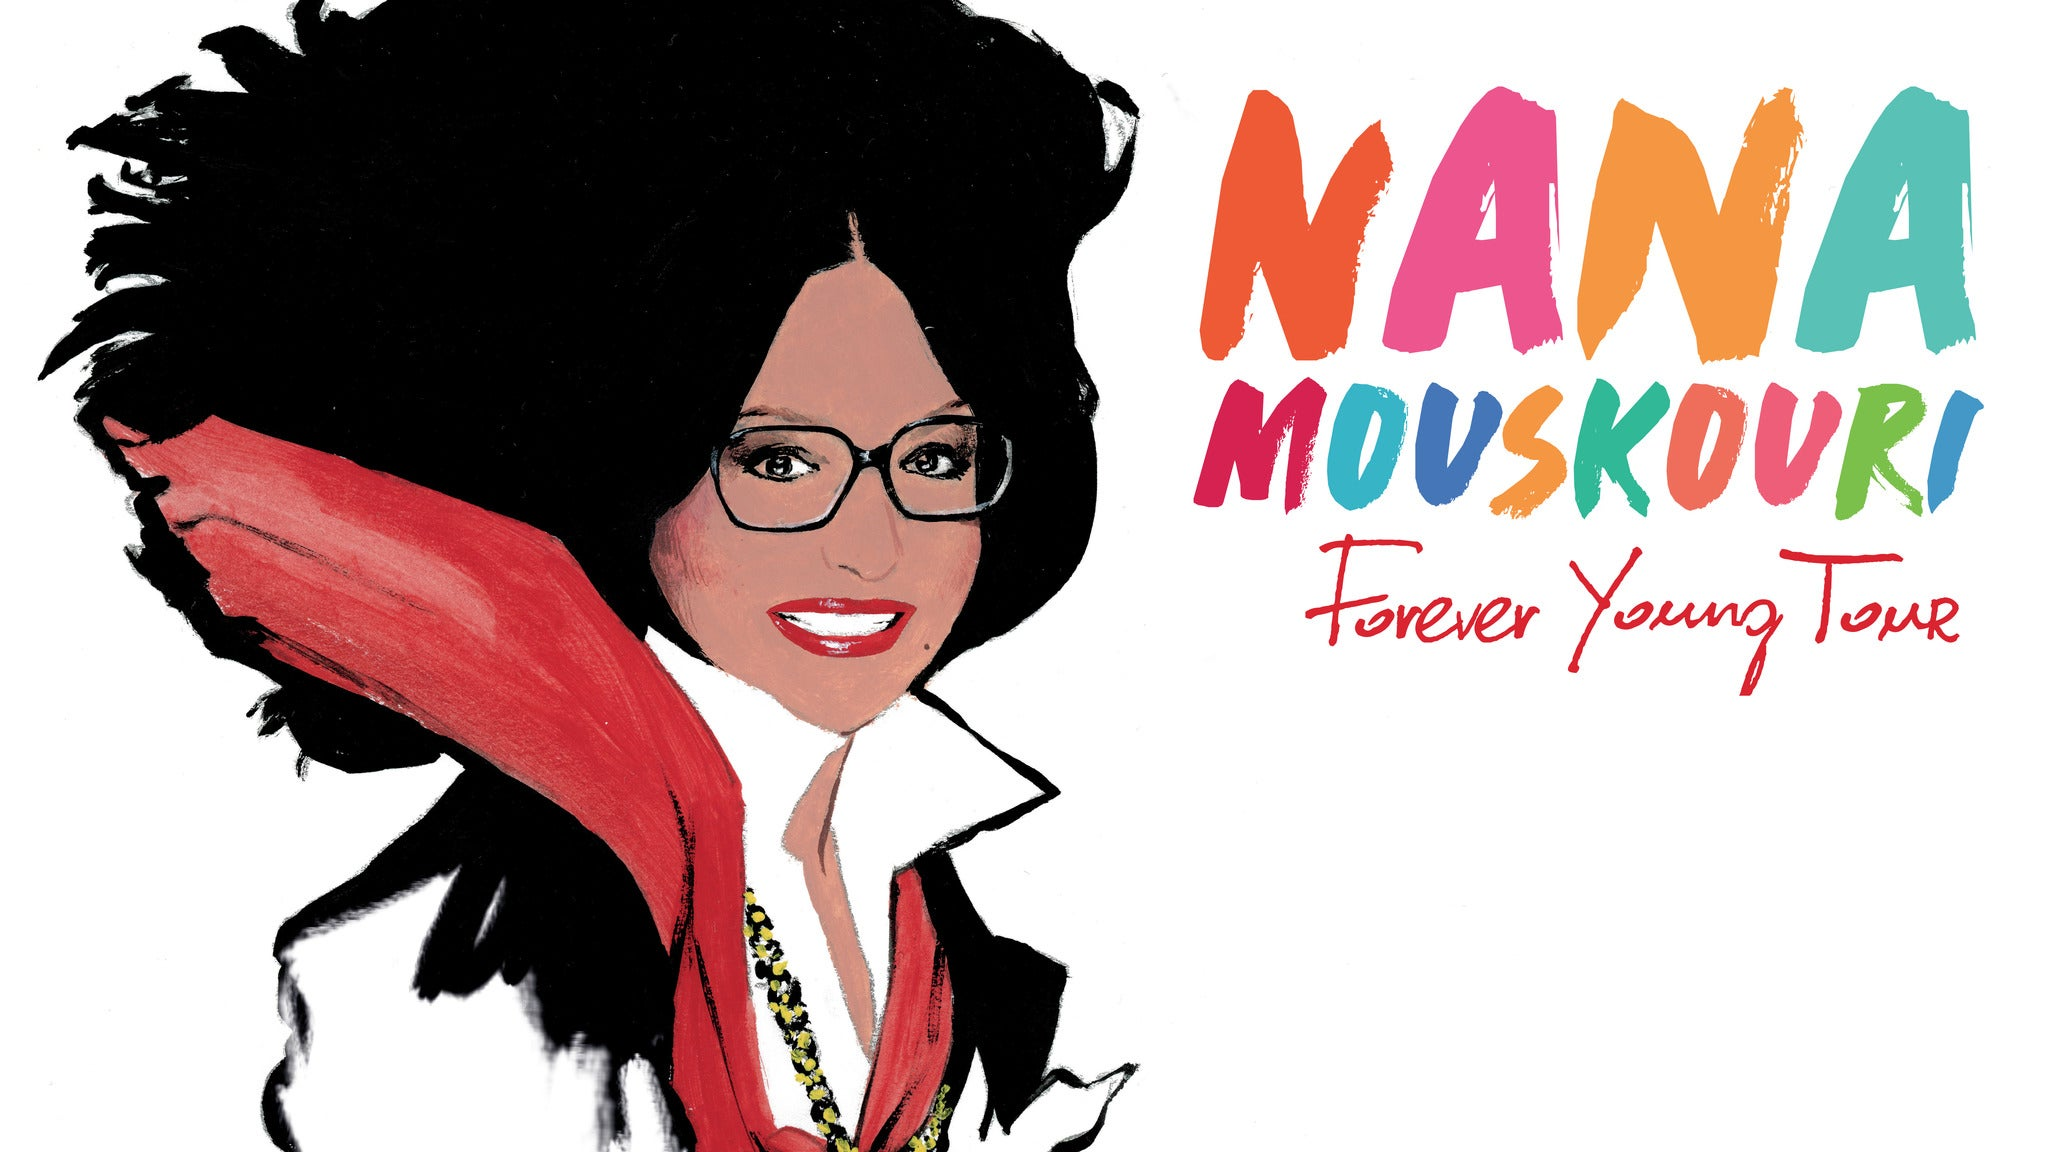 Nana Mouskouri: Forever Young Tour at Saban Theatre